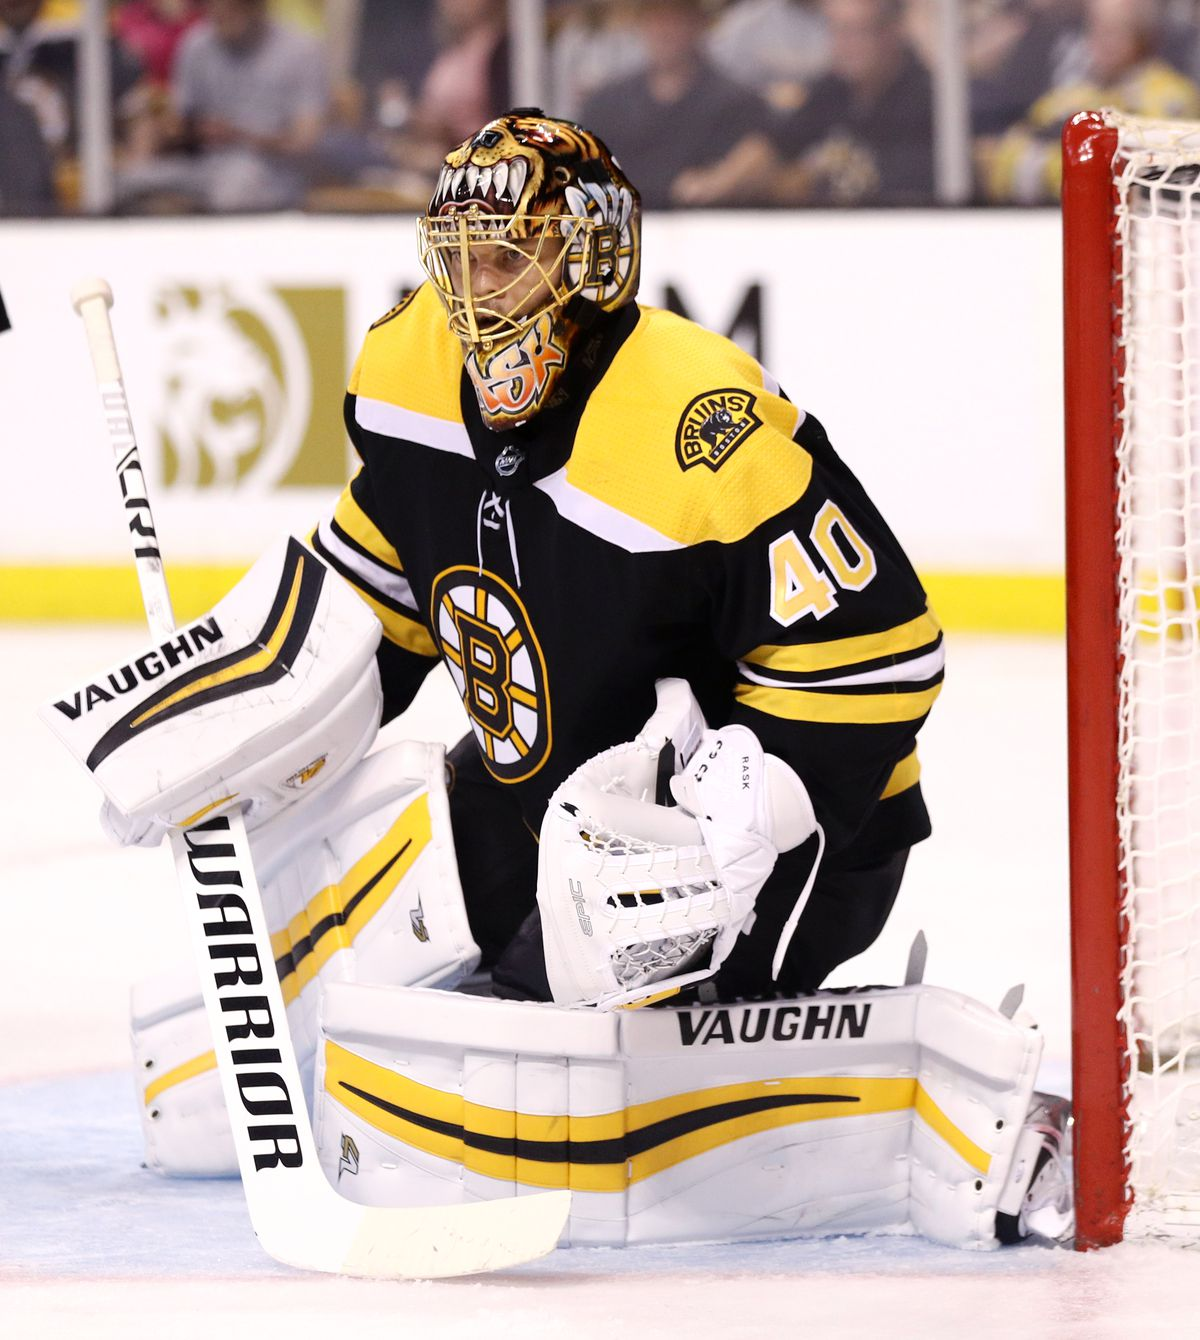 2018-2019 NHL Preview: Boston Bruins